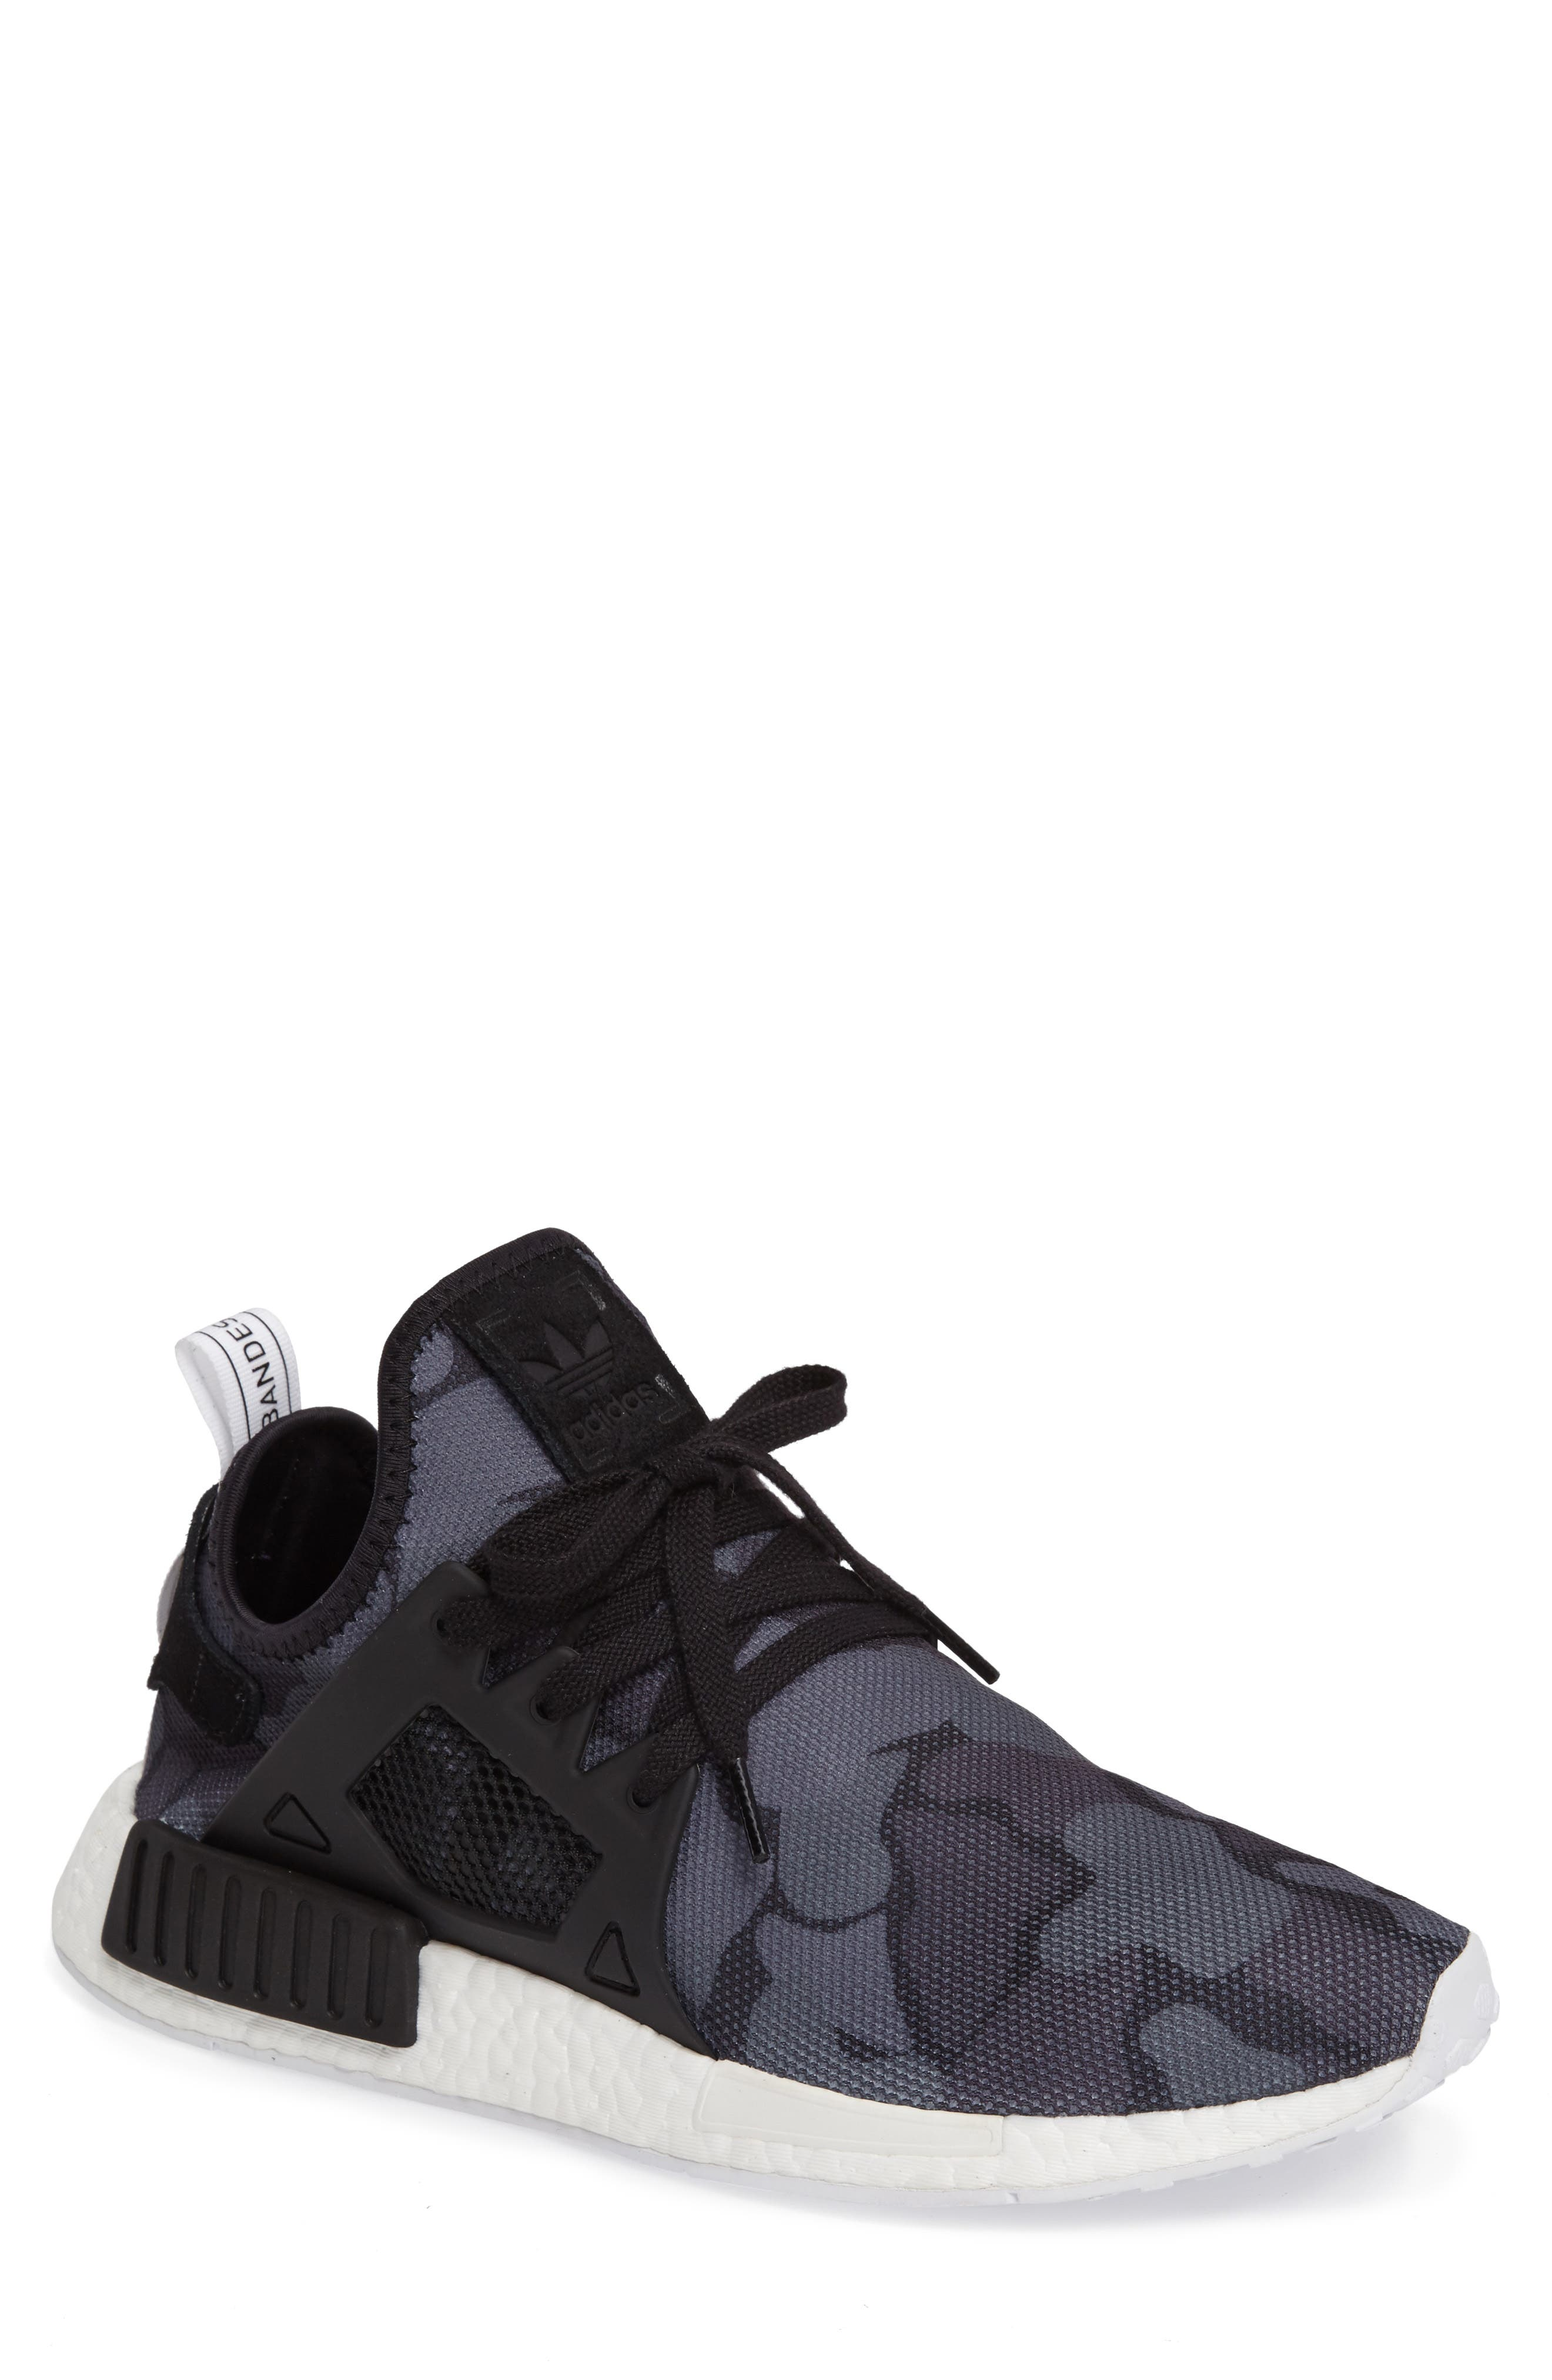 ADIDAS NMD XR1 Camo Pack Sneakers, Main, color, 001